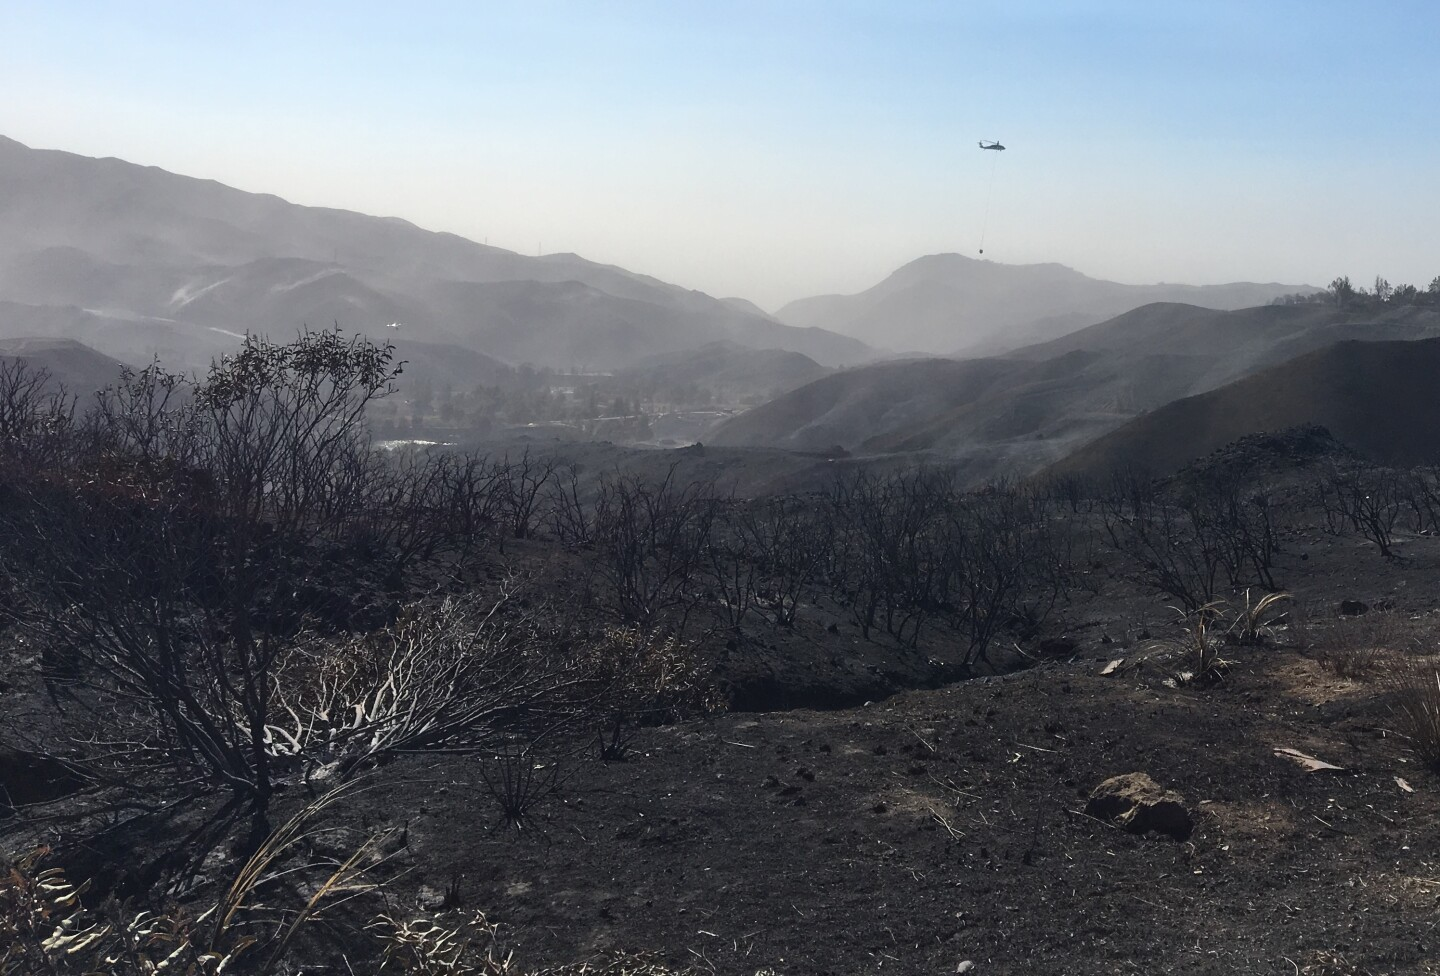 Scorched Hills in Malibu with helicopter carrying water in the distance during the Woolsey Fire